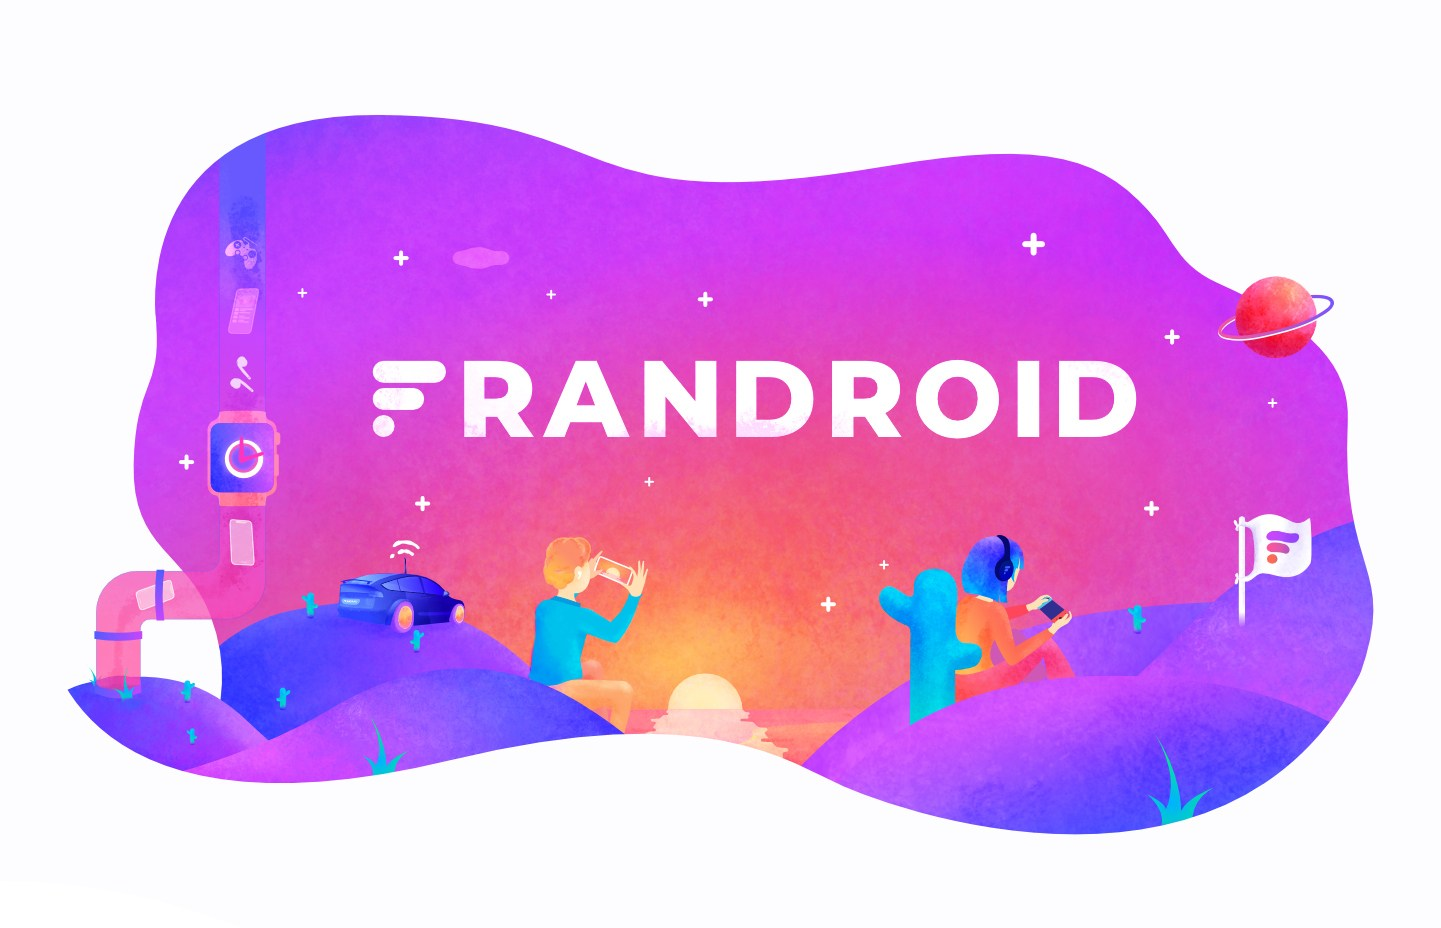 FrAndroid devient Frandroid